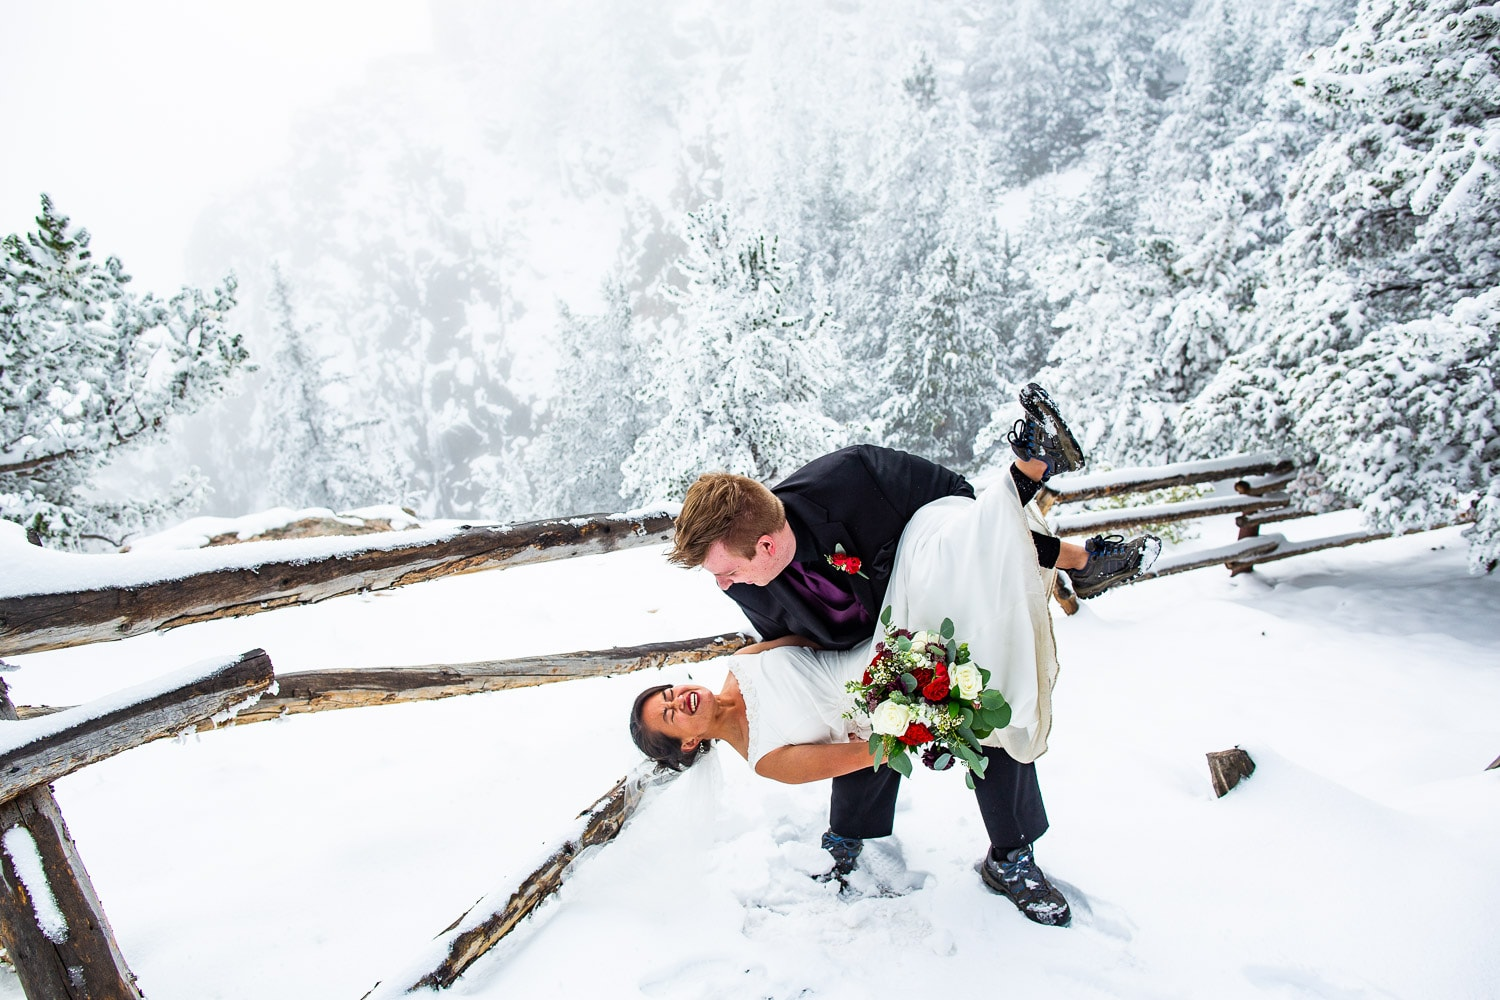 A groom dips his bride wearing hiking boots in the mountains, surrounded by snow.